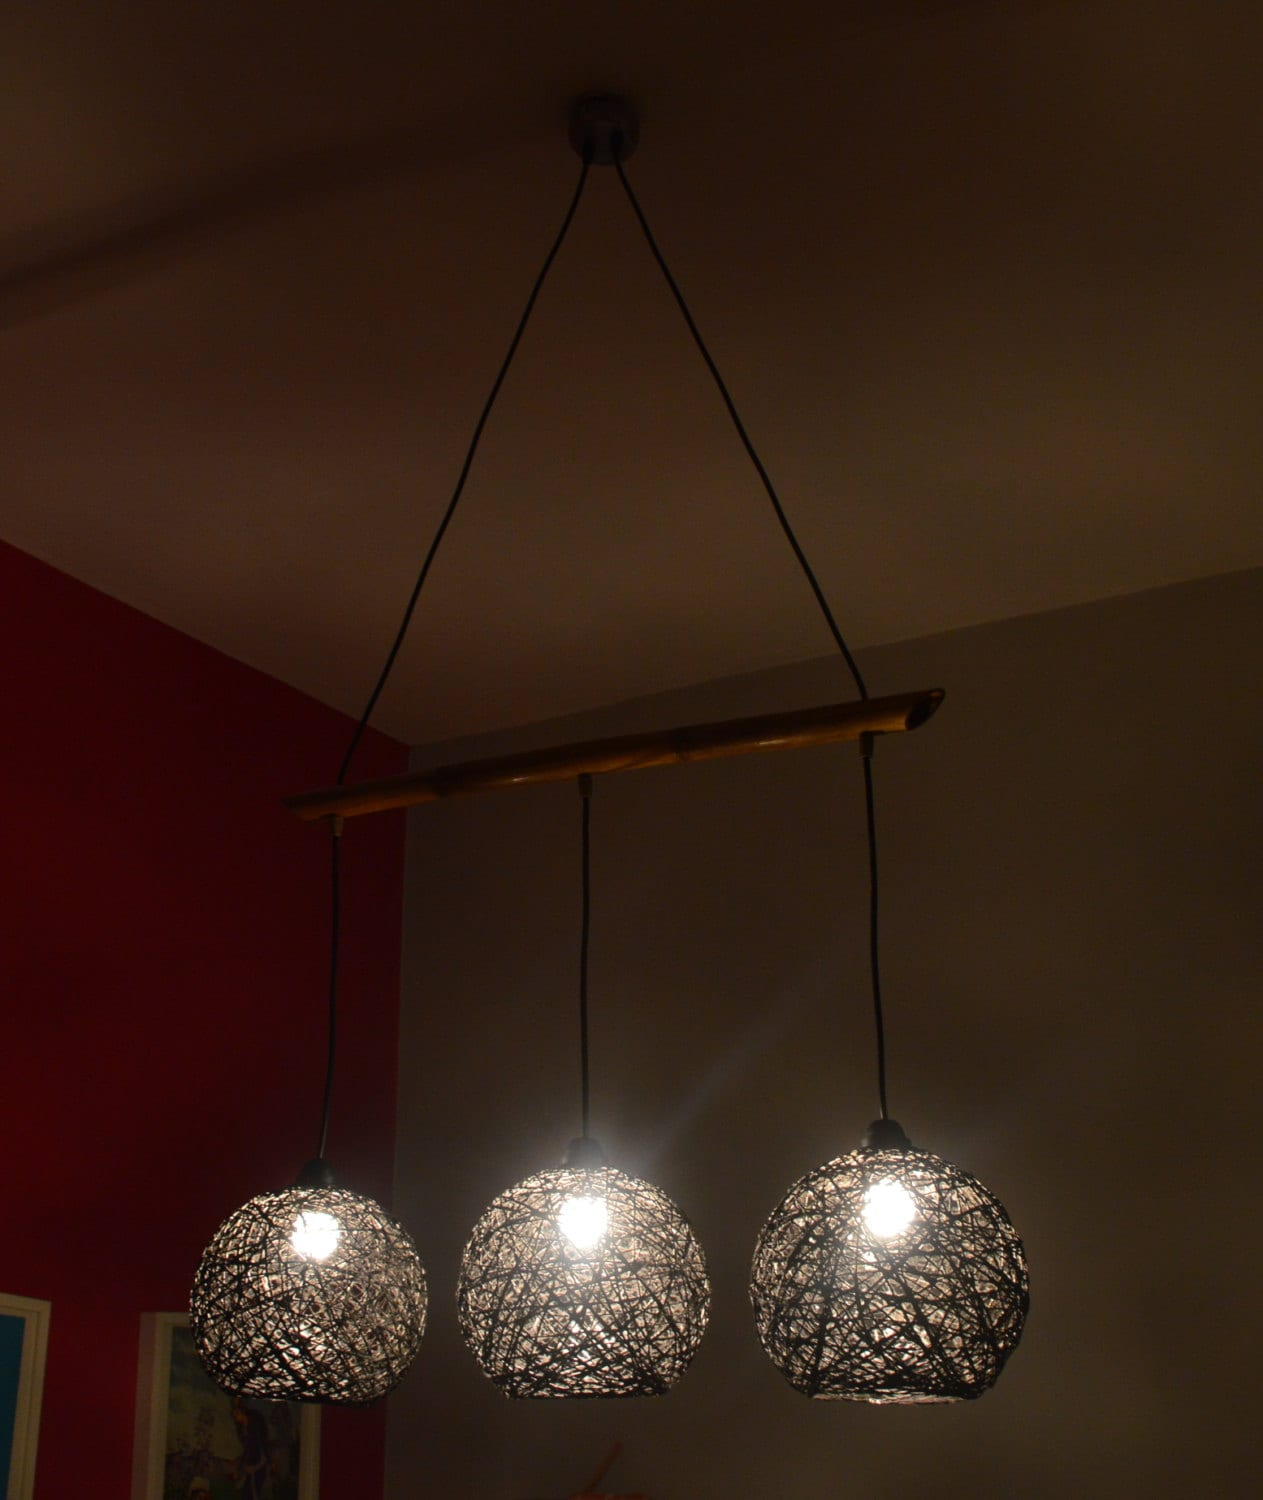 shades everyday shade diy lamp from lamps impressive you for chandelier chandeliers can nice about objects ideas create